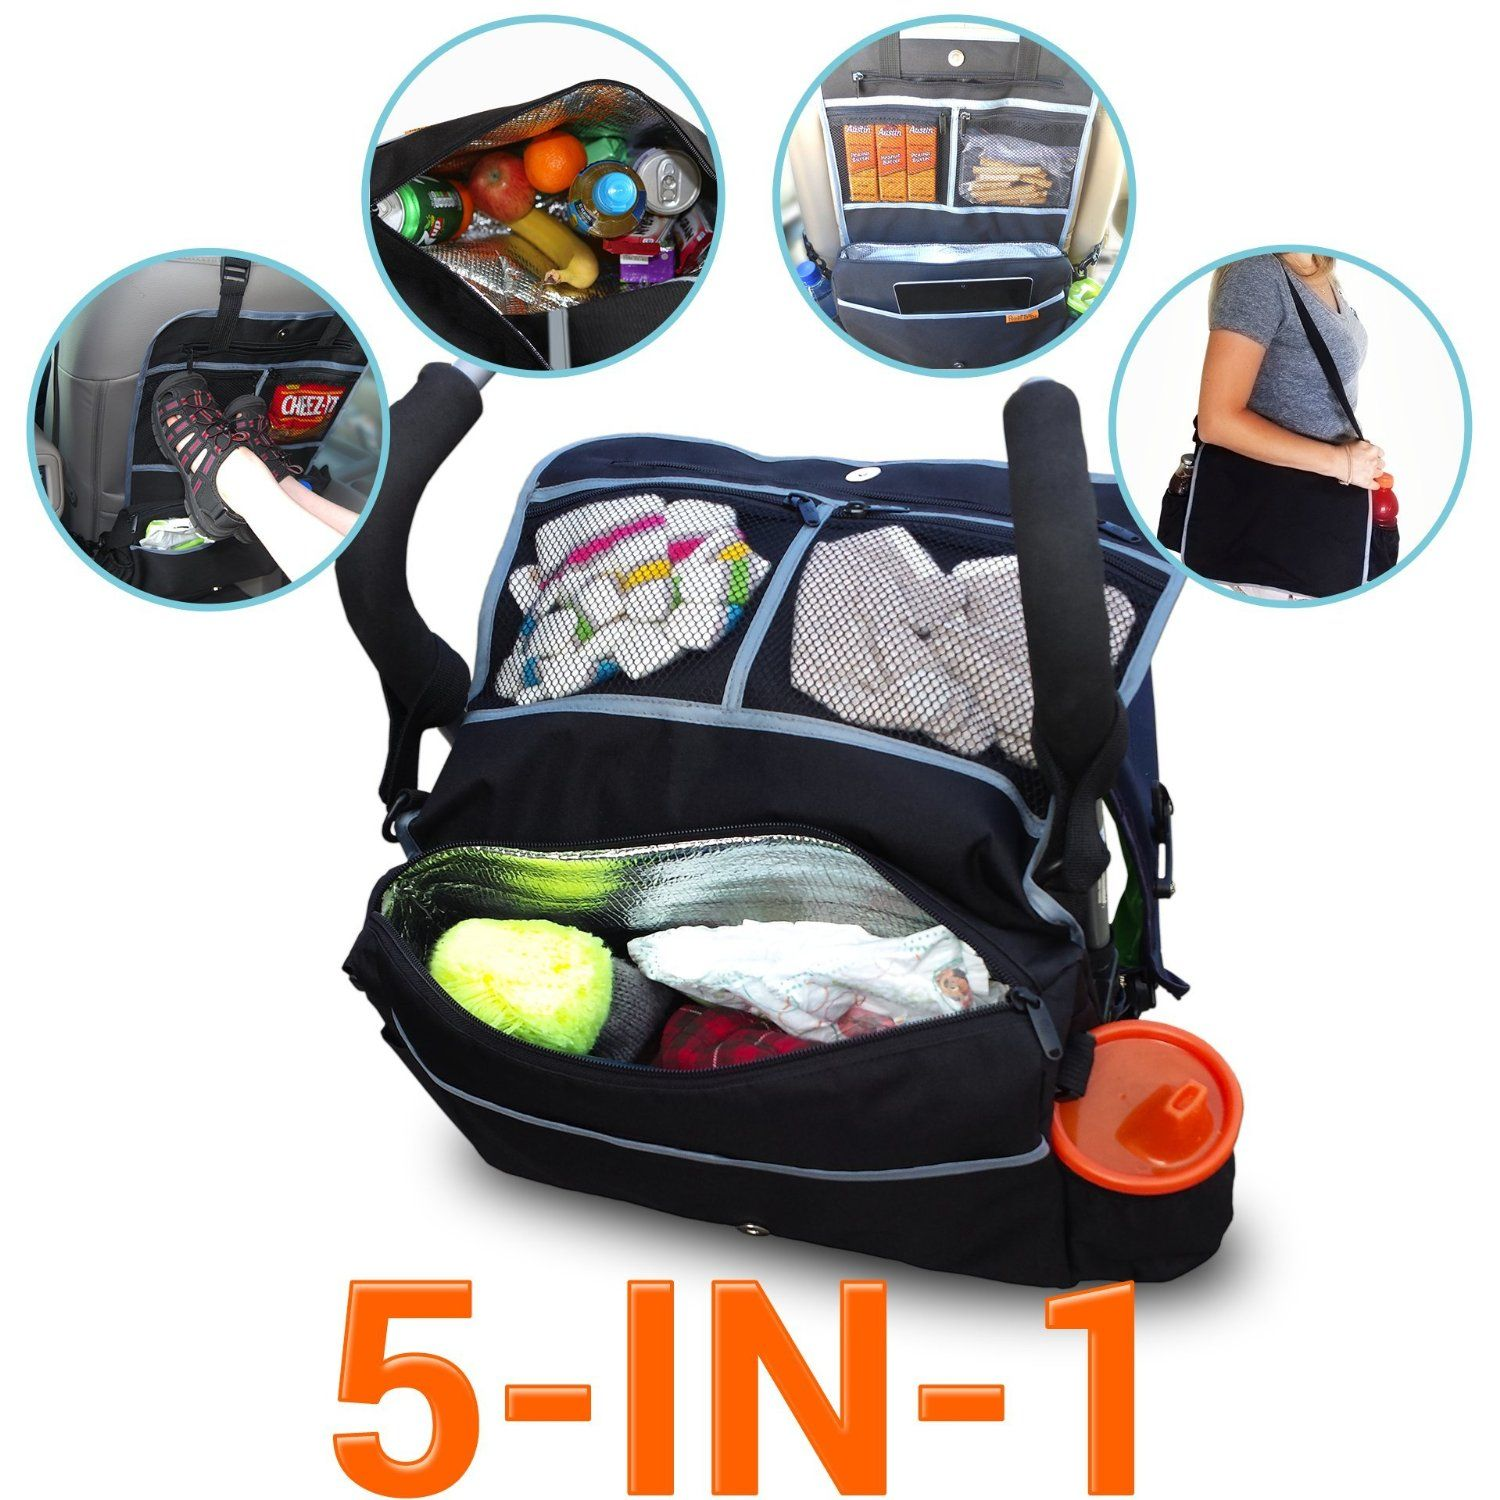 5in1 insulated stroller bag and backseat organizer